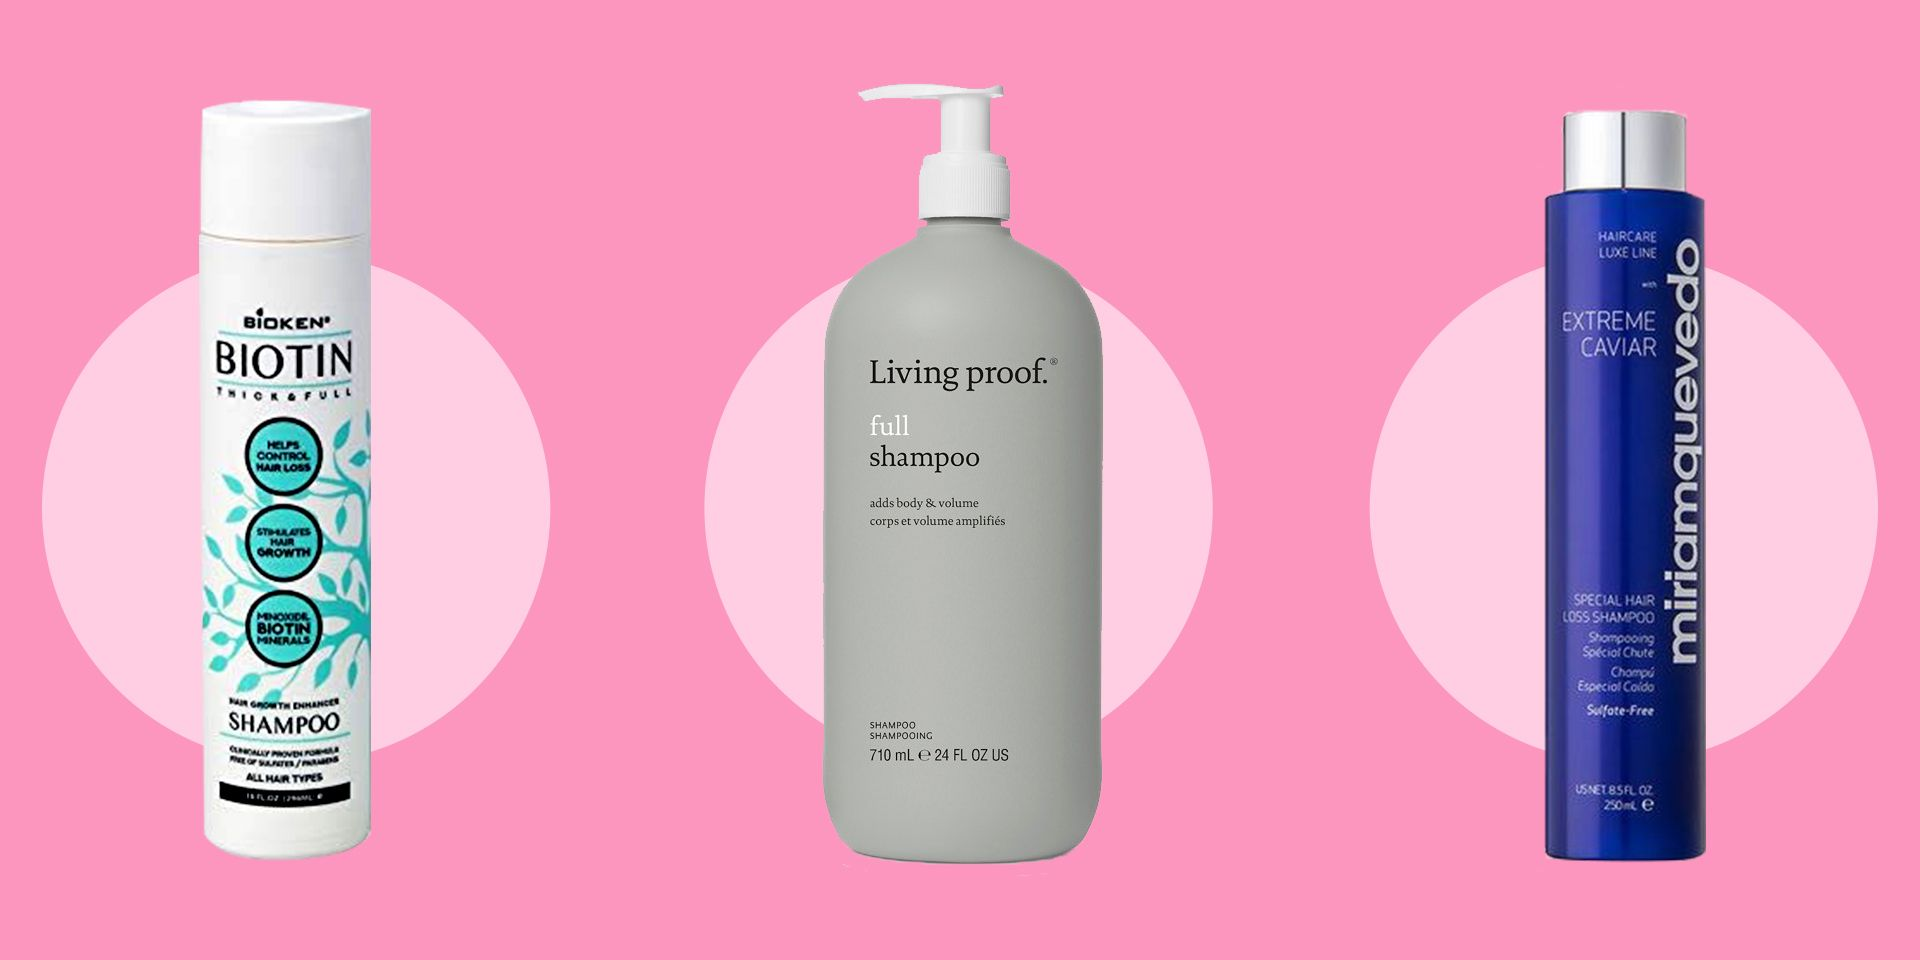 15 of the Best Shampoos You Can Use To Treat and Add Extra Volume to Thinning Hair